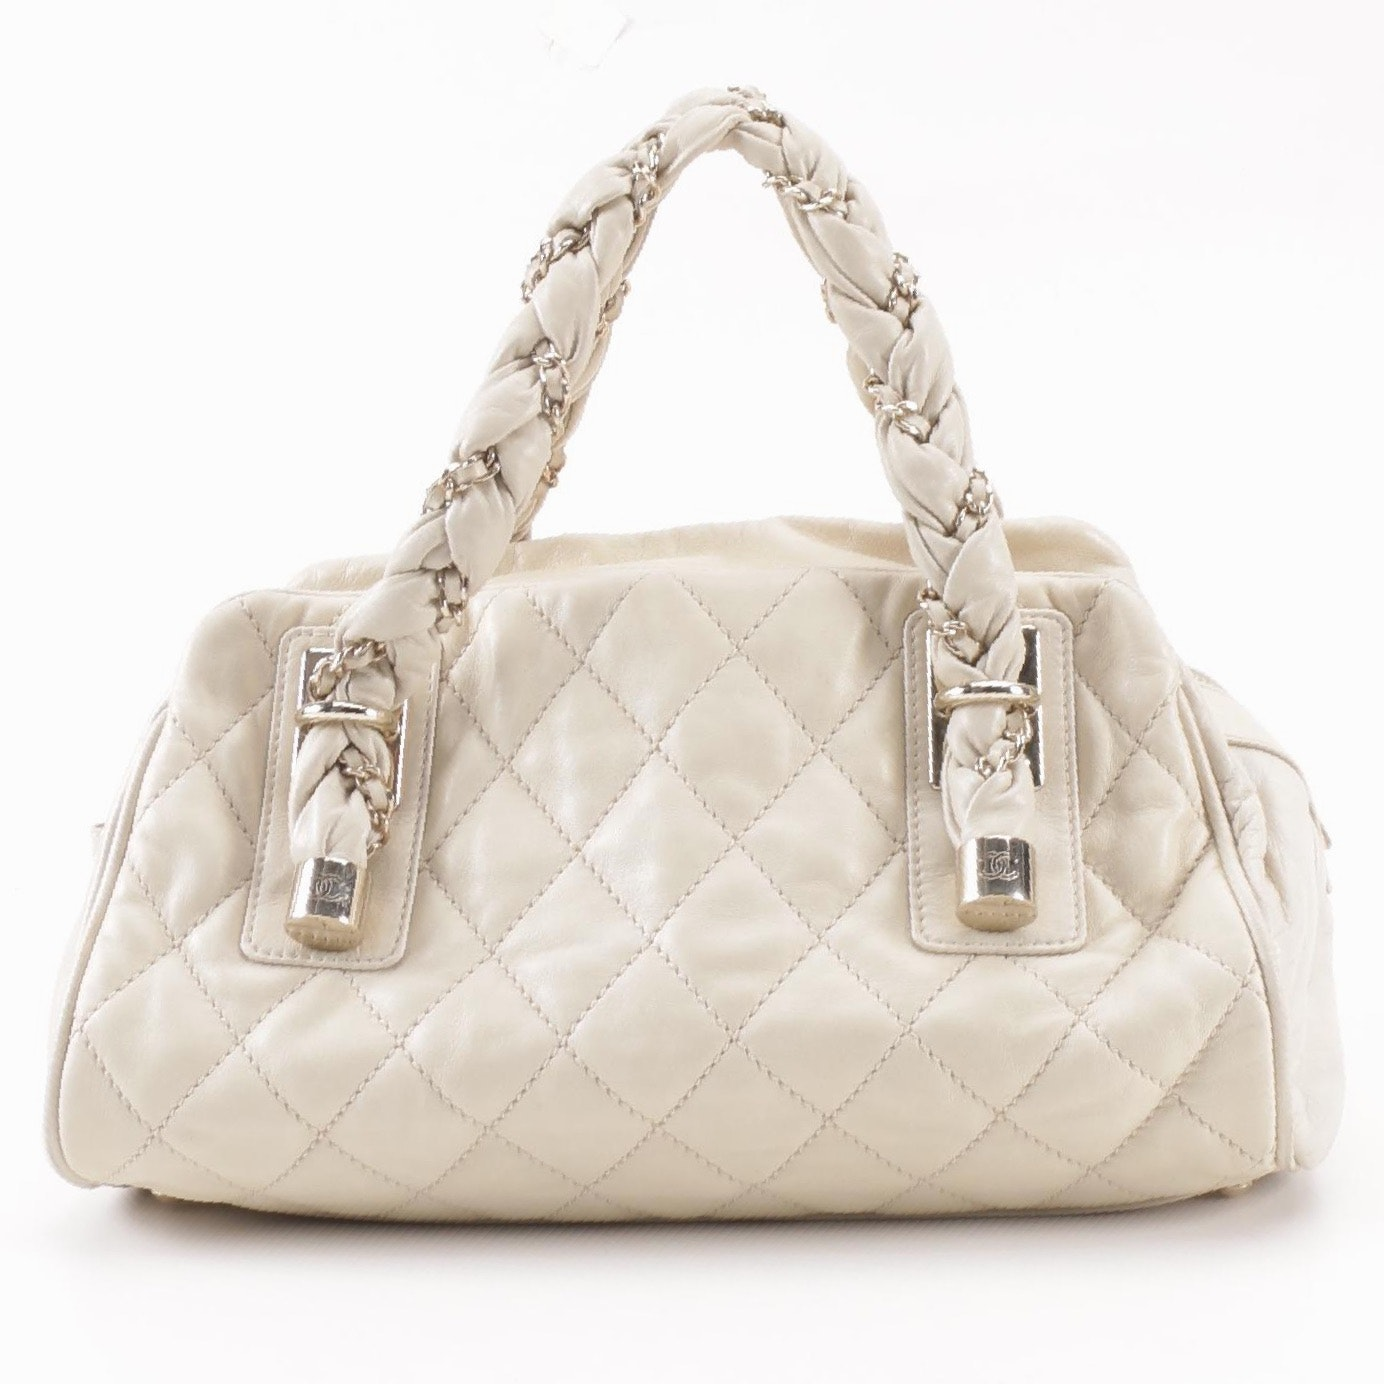 Circa 2006 Chanel Quilted Cream Lambskin Lady Braid Satchel